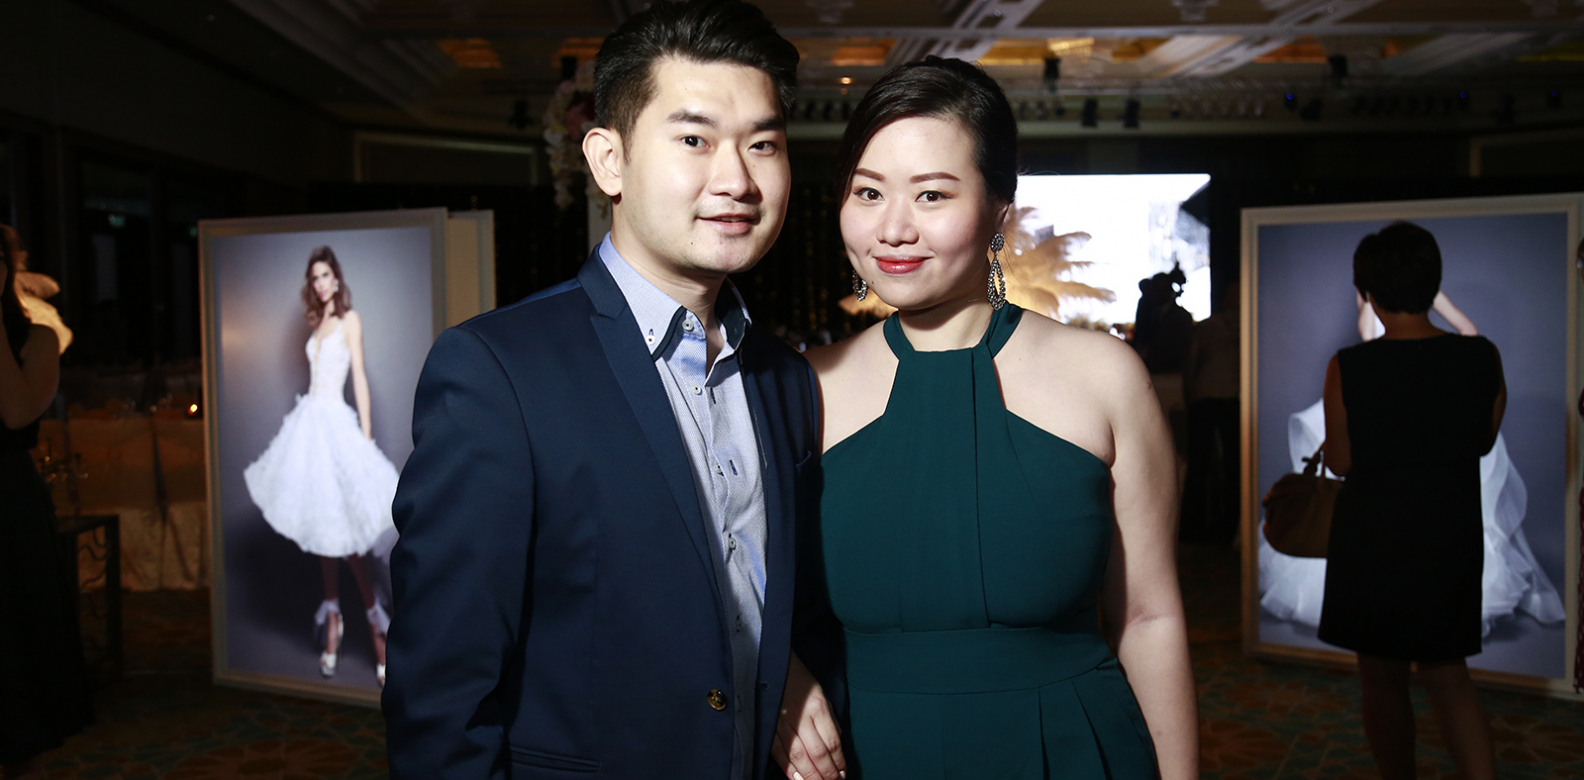 Ken Chin and Adrina Choy